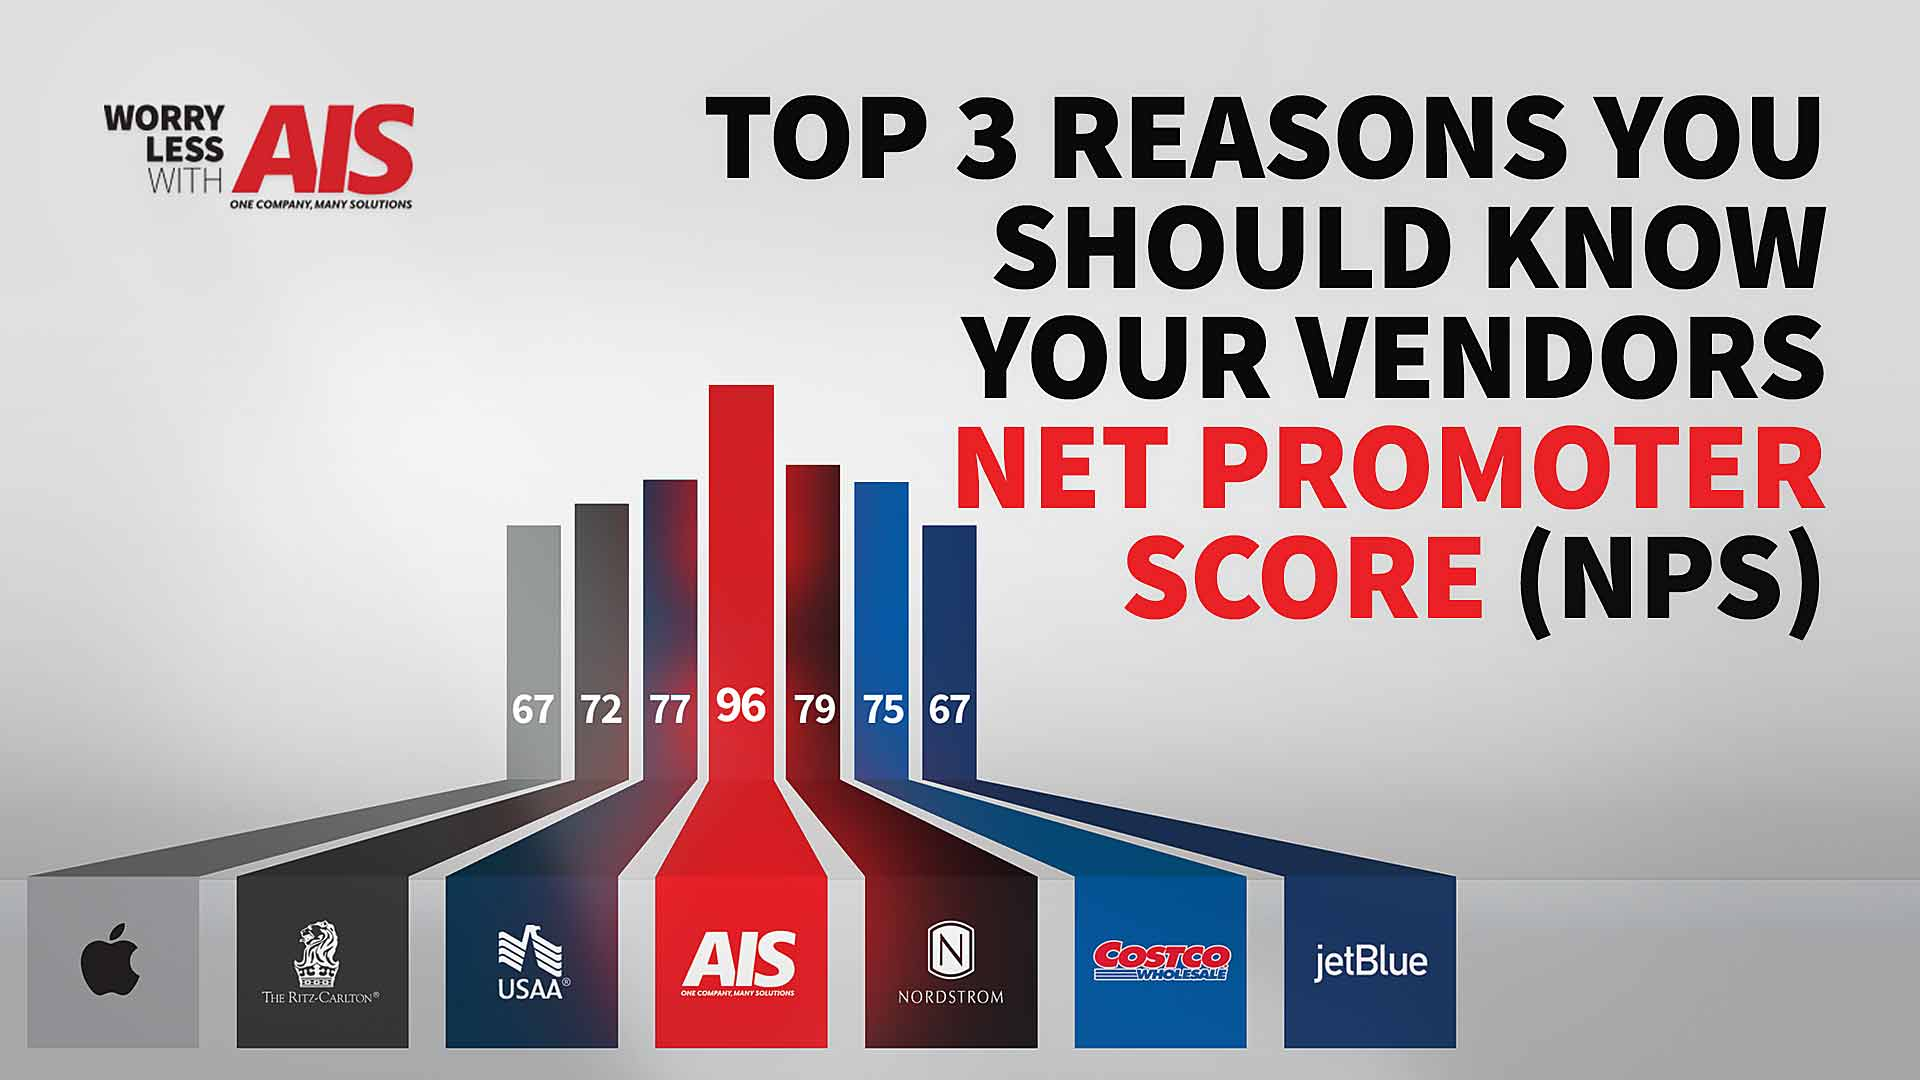 Do Your Office Technology Partners Have a High Net Promoter Score?